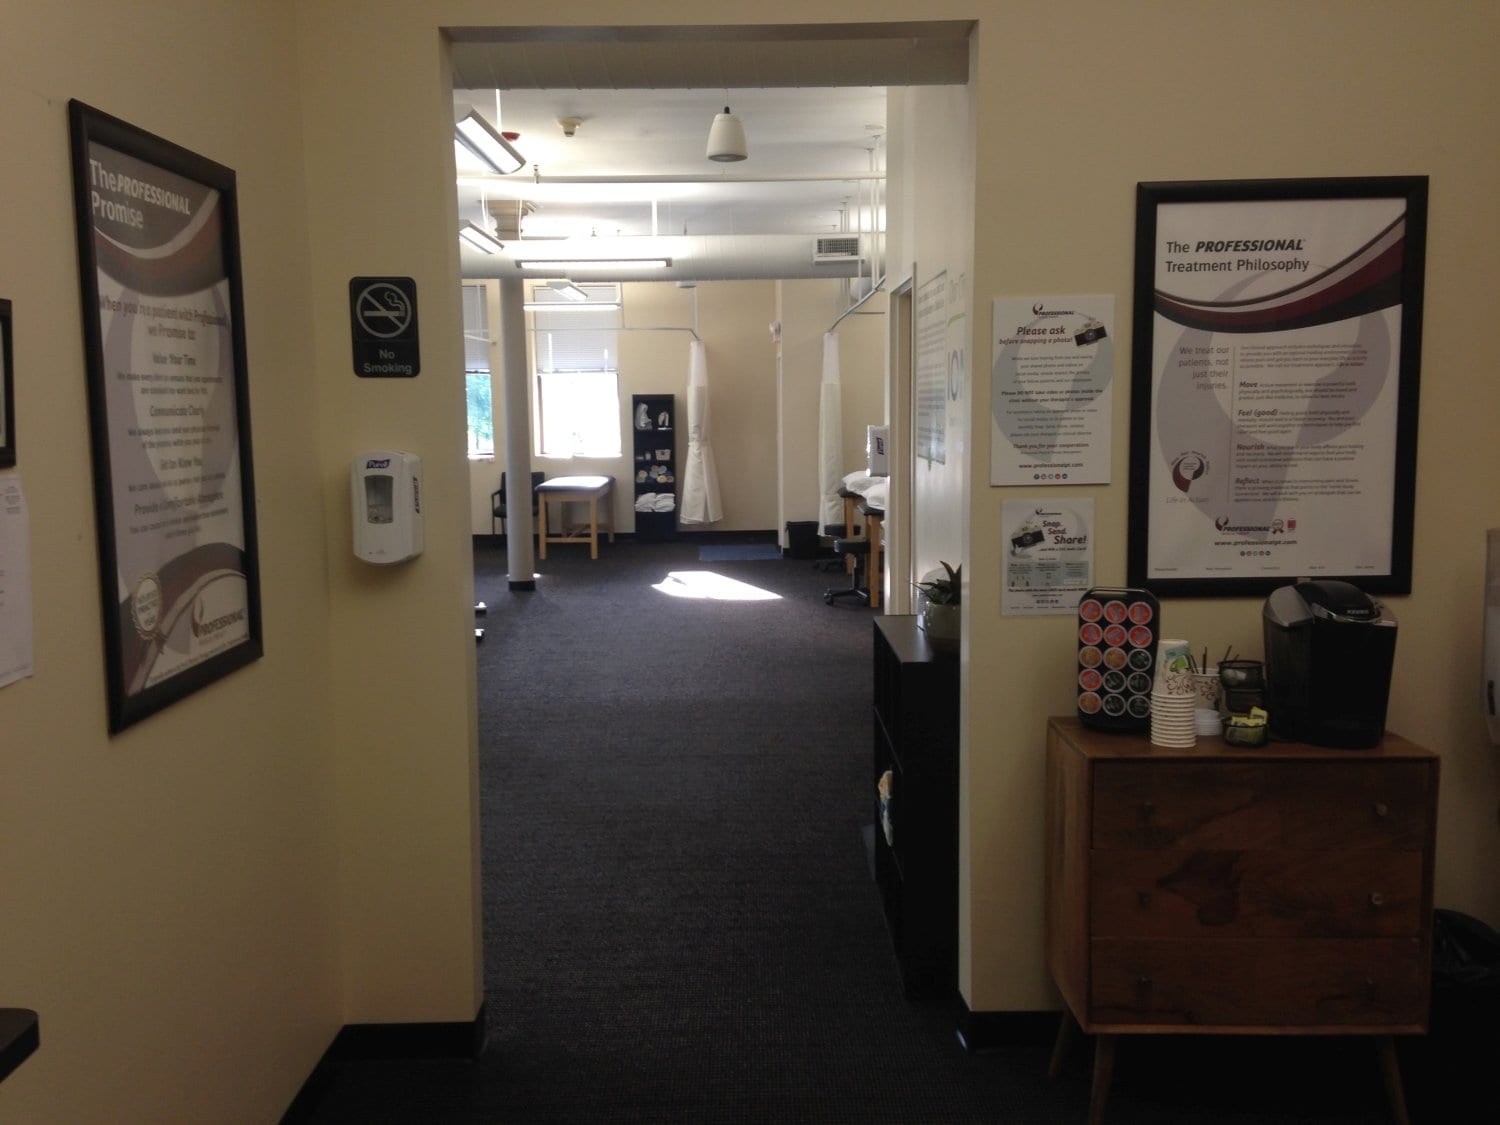 This is an image looking through a doorway into the interior of our physical therapy clinic in Watertown, Massachusetts.